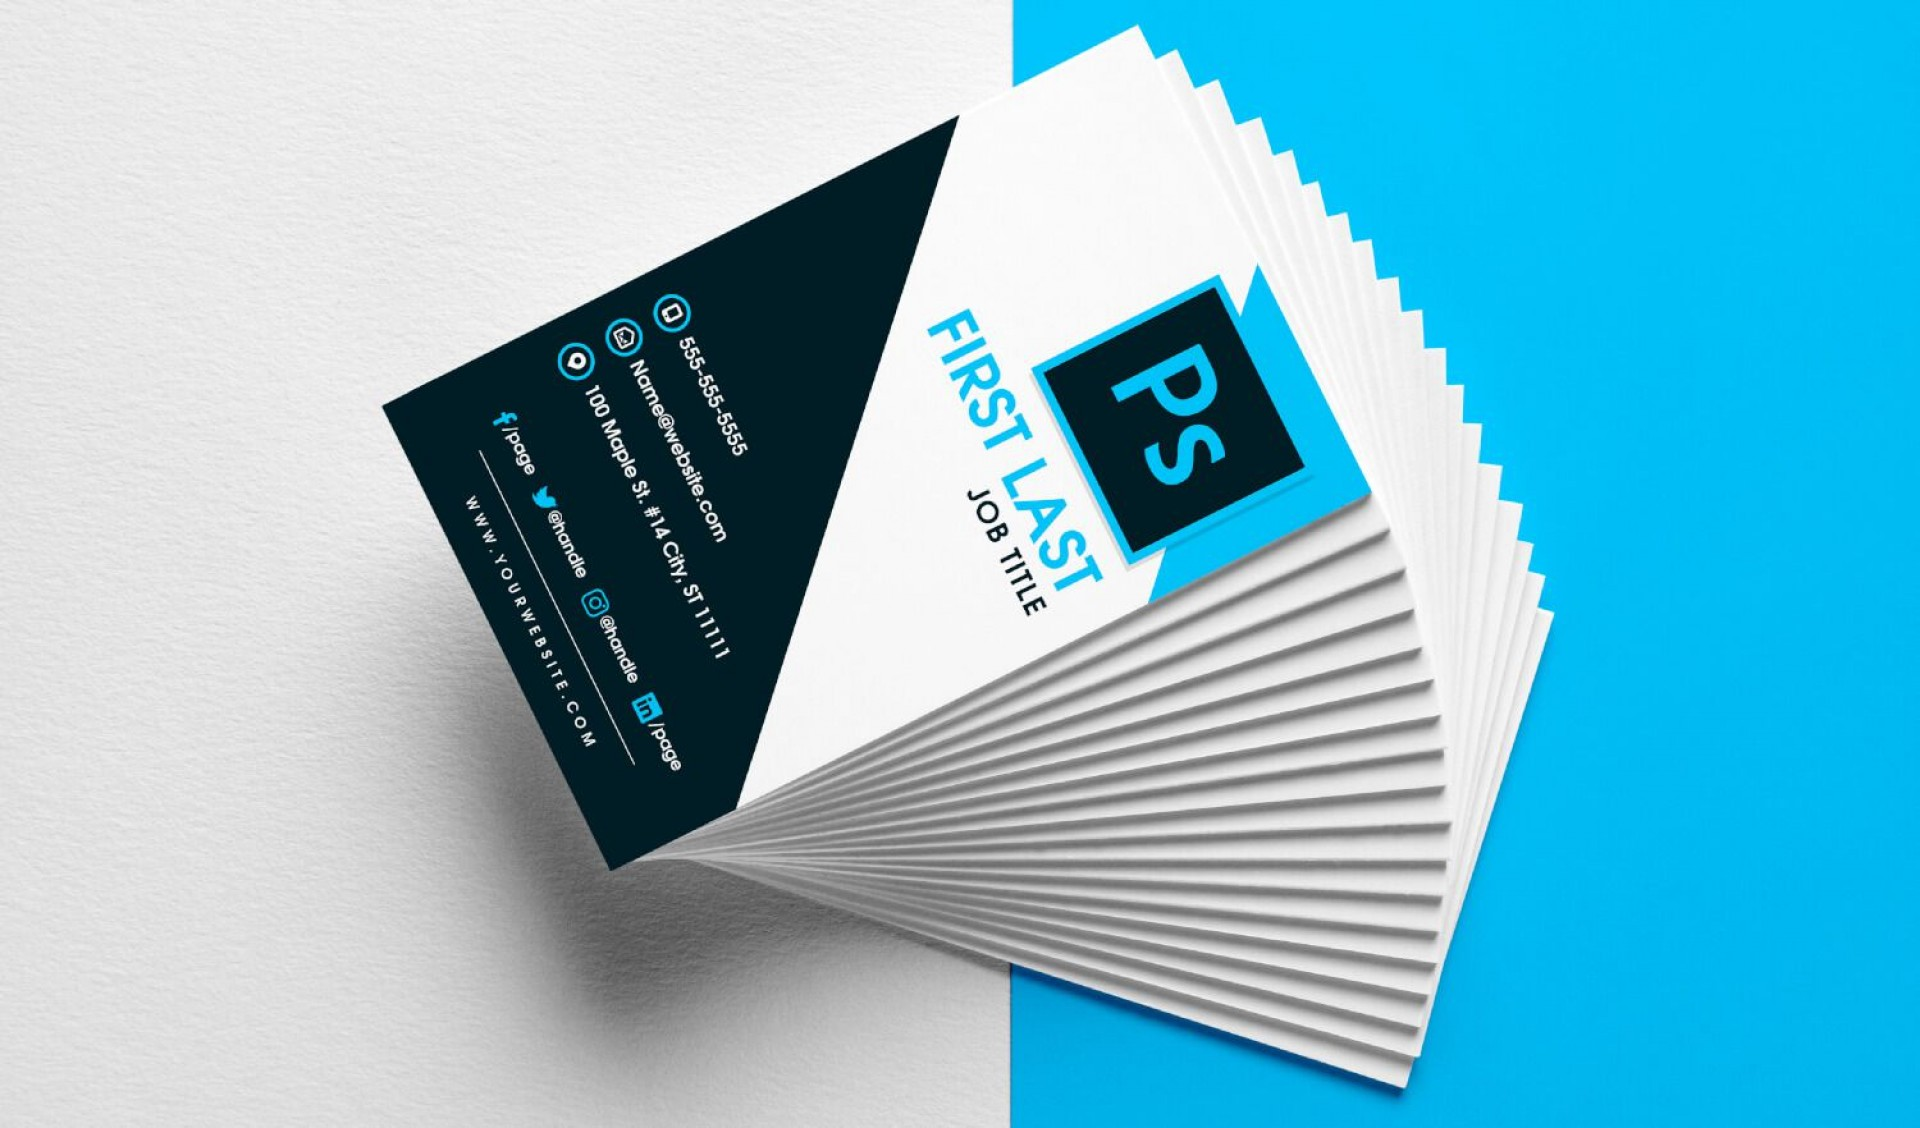 008 Awesome Busines Card Template Psd High Resolution  Professional Photographer Freebie Visiting File Free Download1920